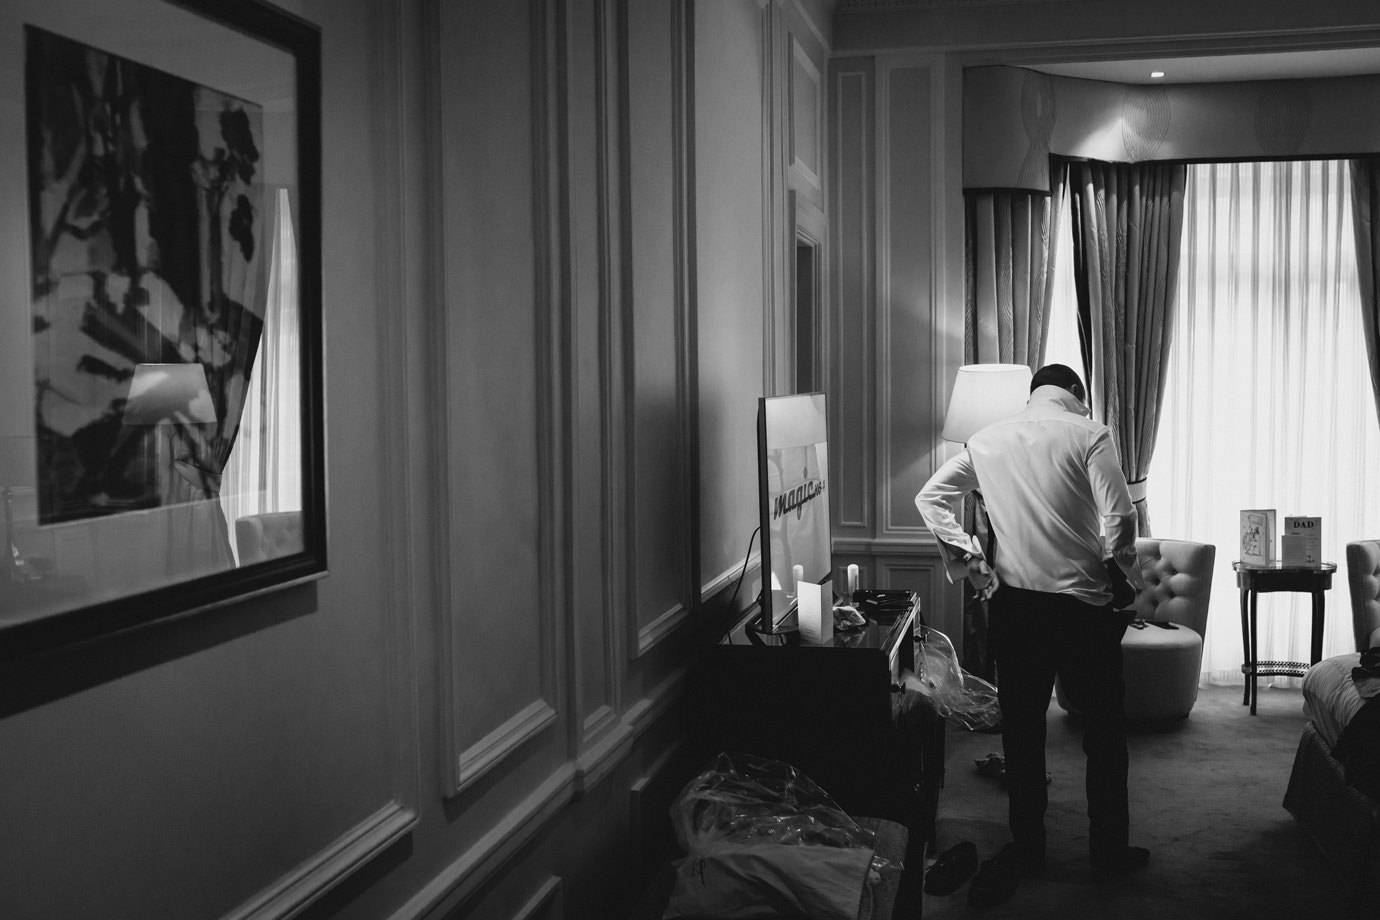 Dressing groom claridges hotel documentary wedding photography